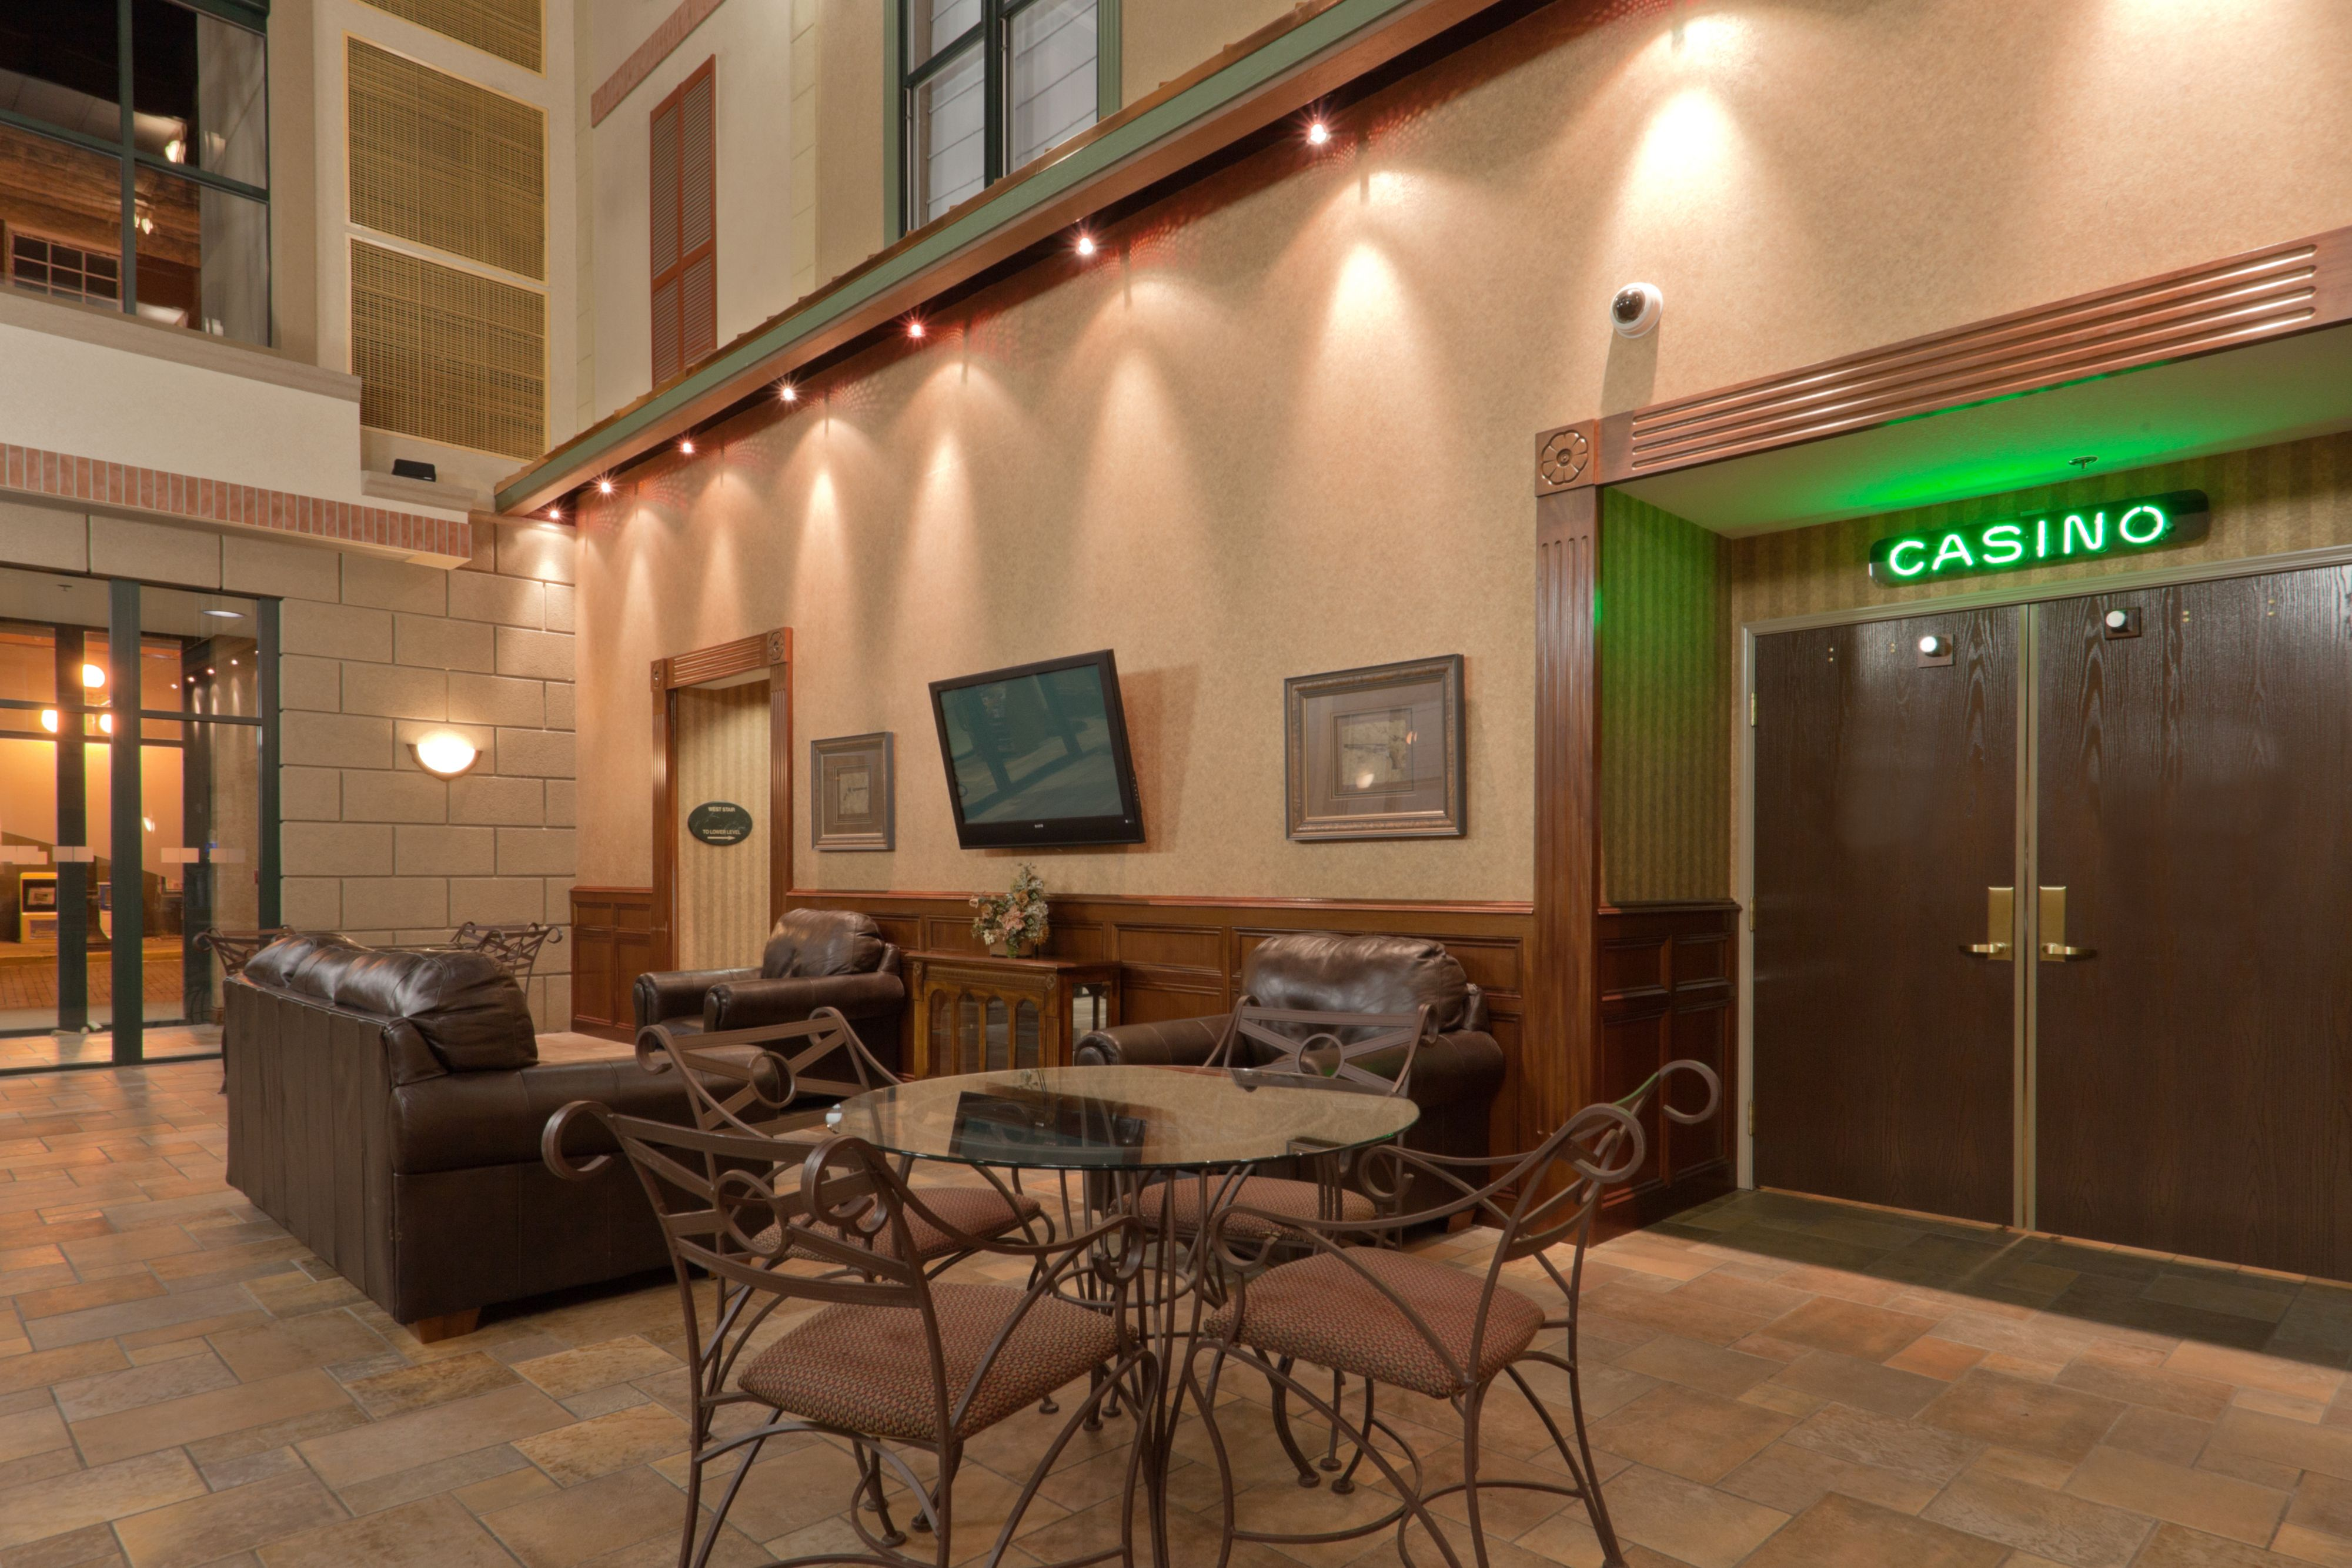 Holiday Inn Express & Suites Deadwood-Gold Dust Casino image 5